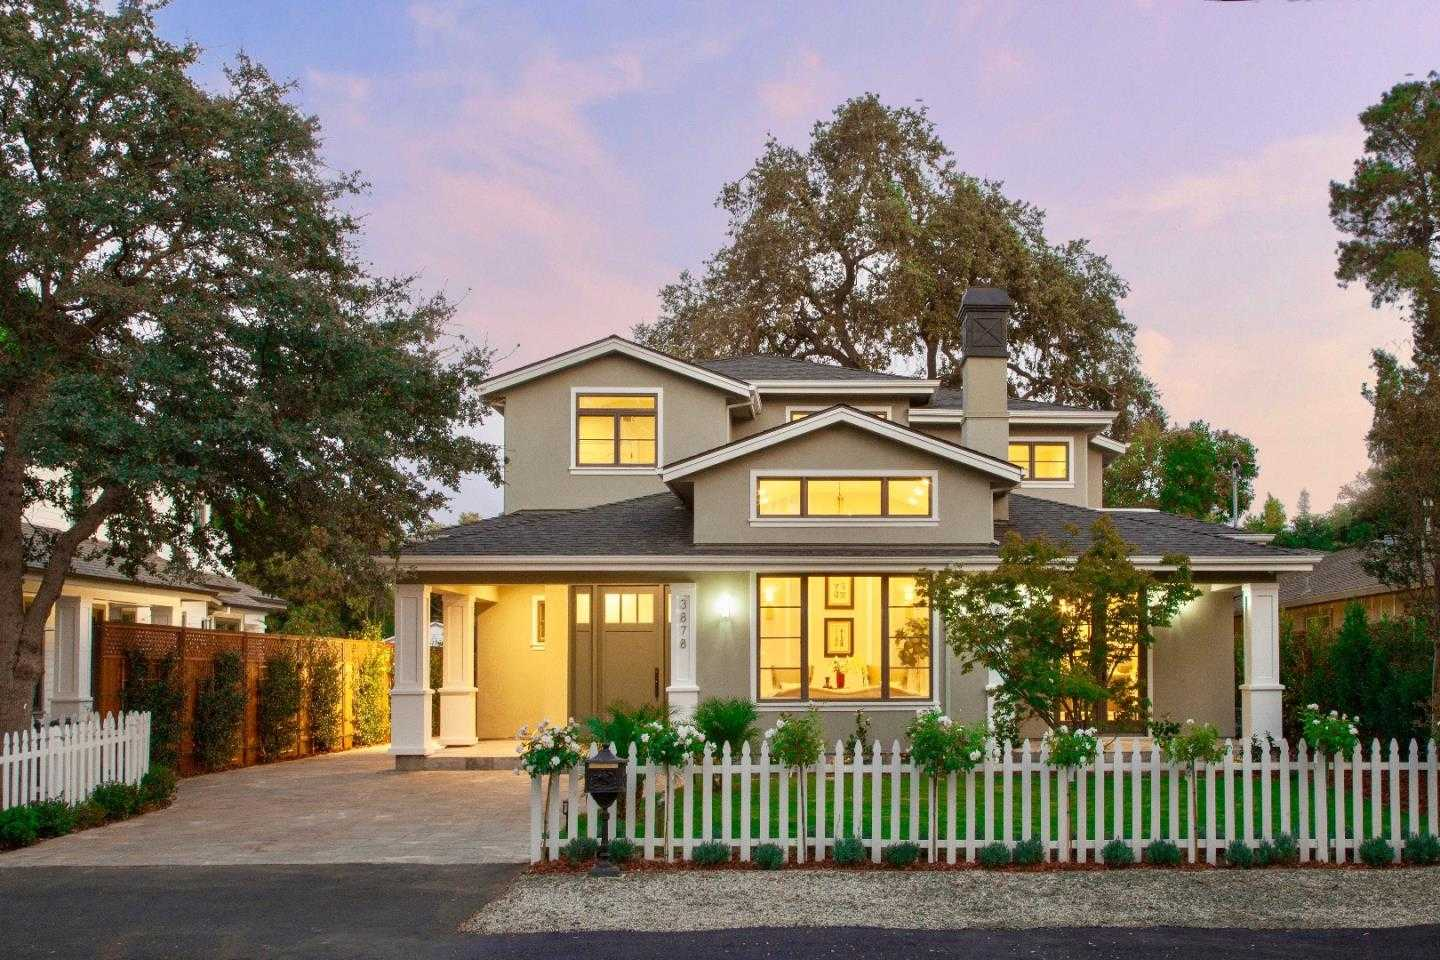 $4,295,000 - 5Br/4Ba -  for Sale in Palo Alto